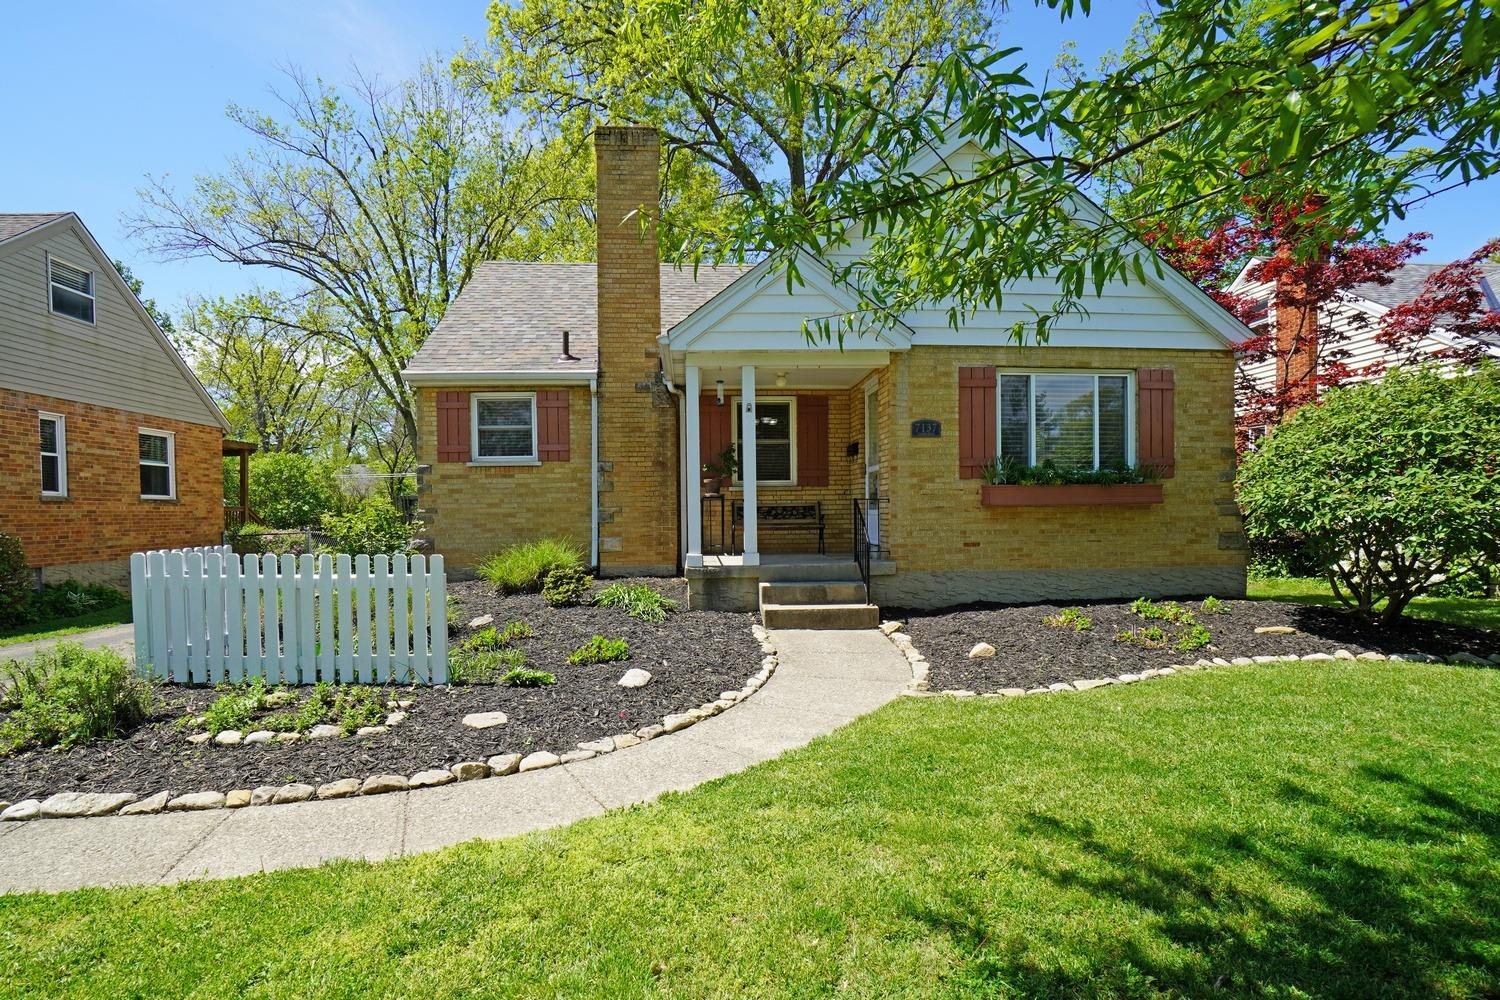 7137 Garden Rd Sycamore Twp OH